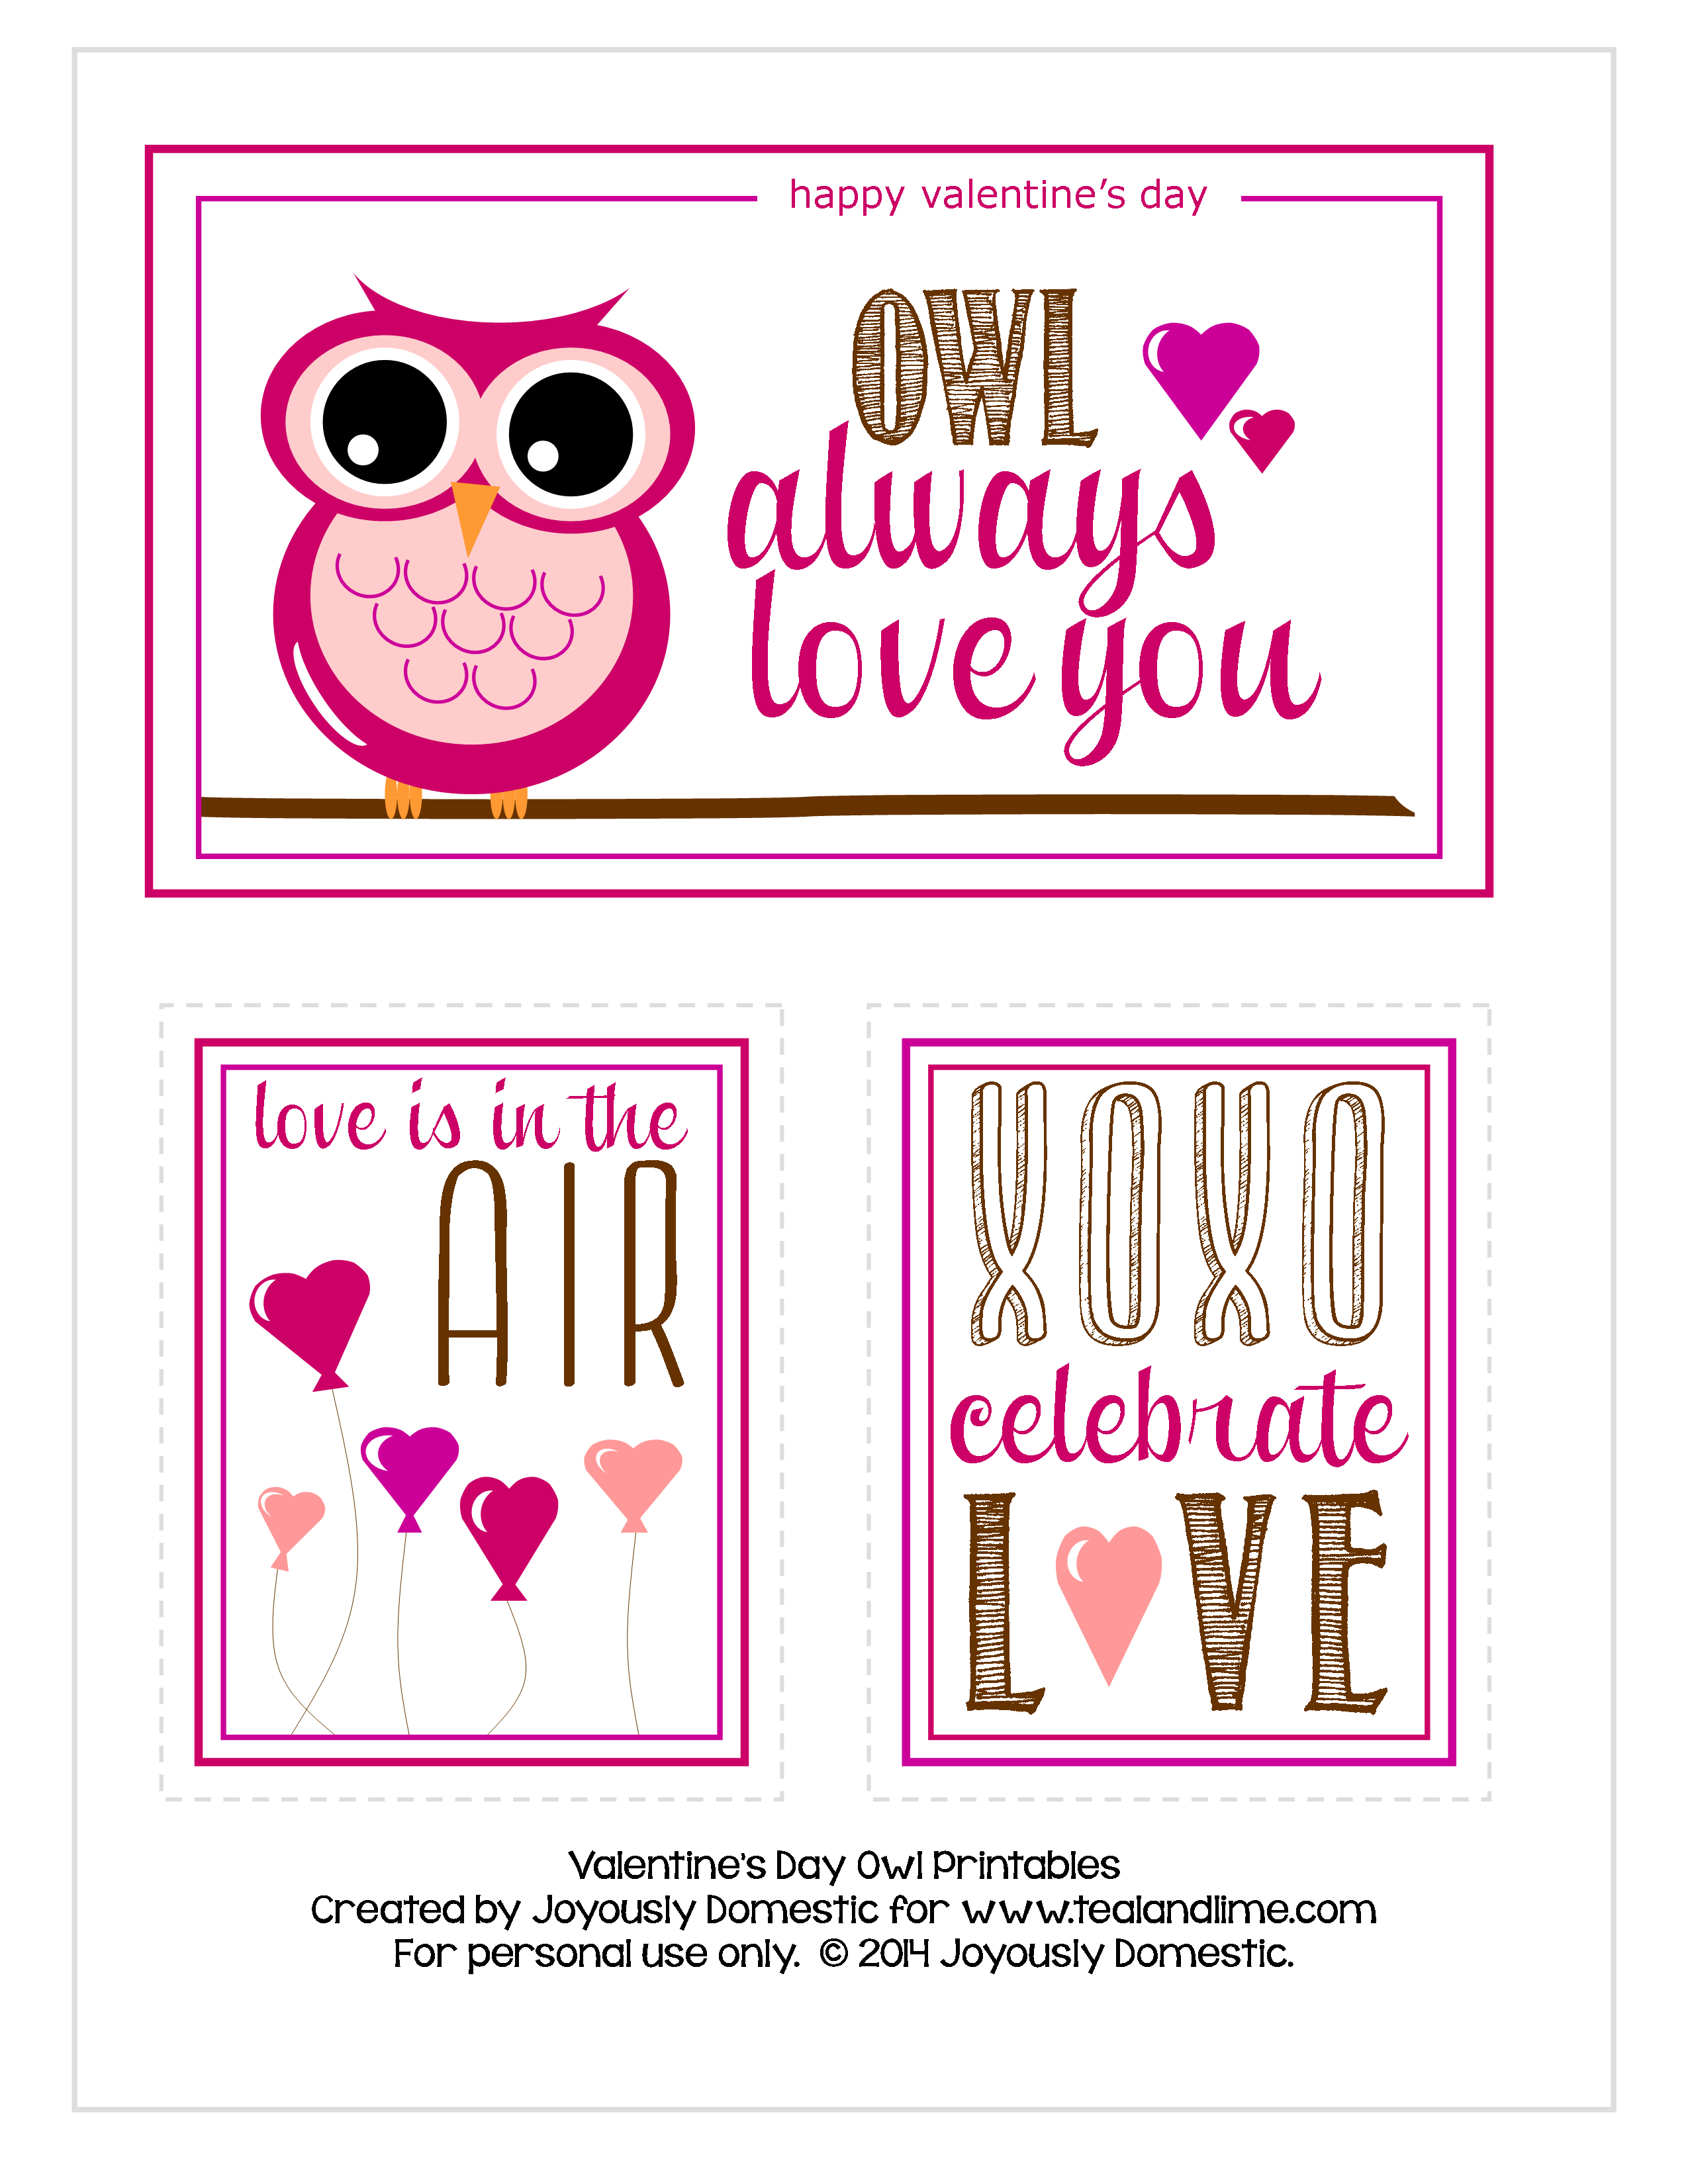 Free Valentine's Day Owl Printable | Joyously Domestic for tealandlime.com